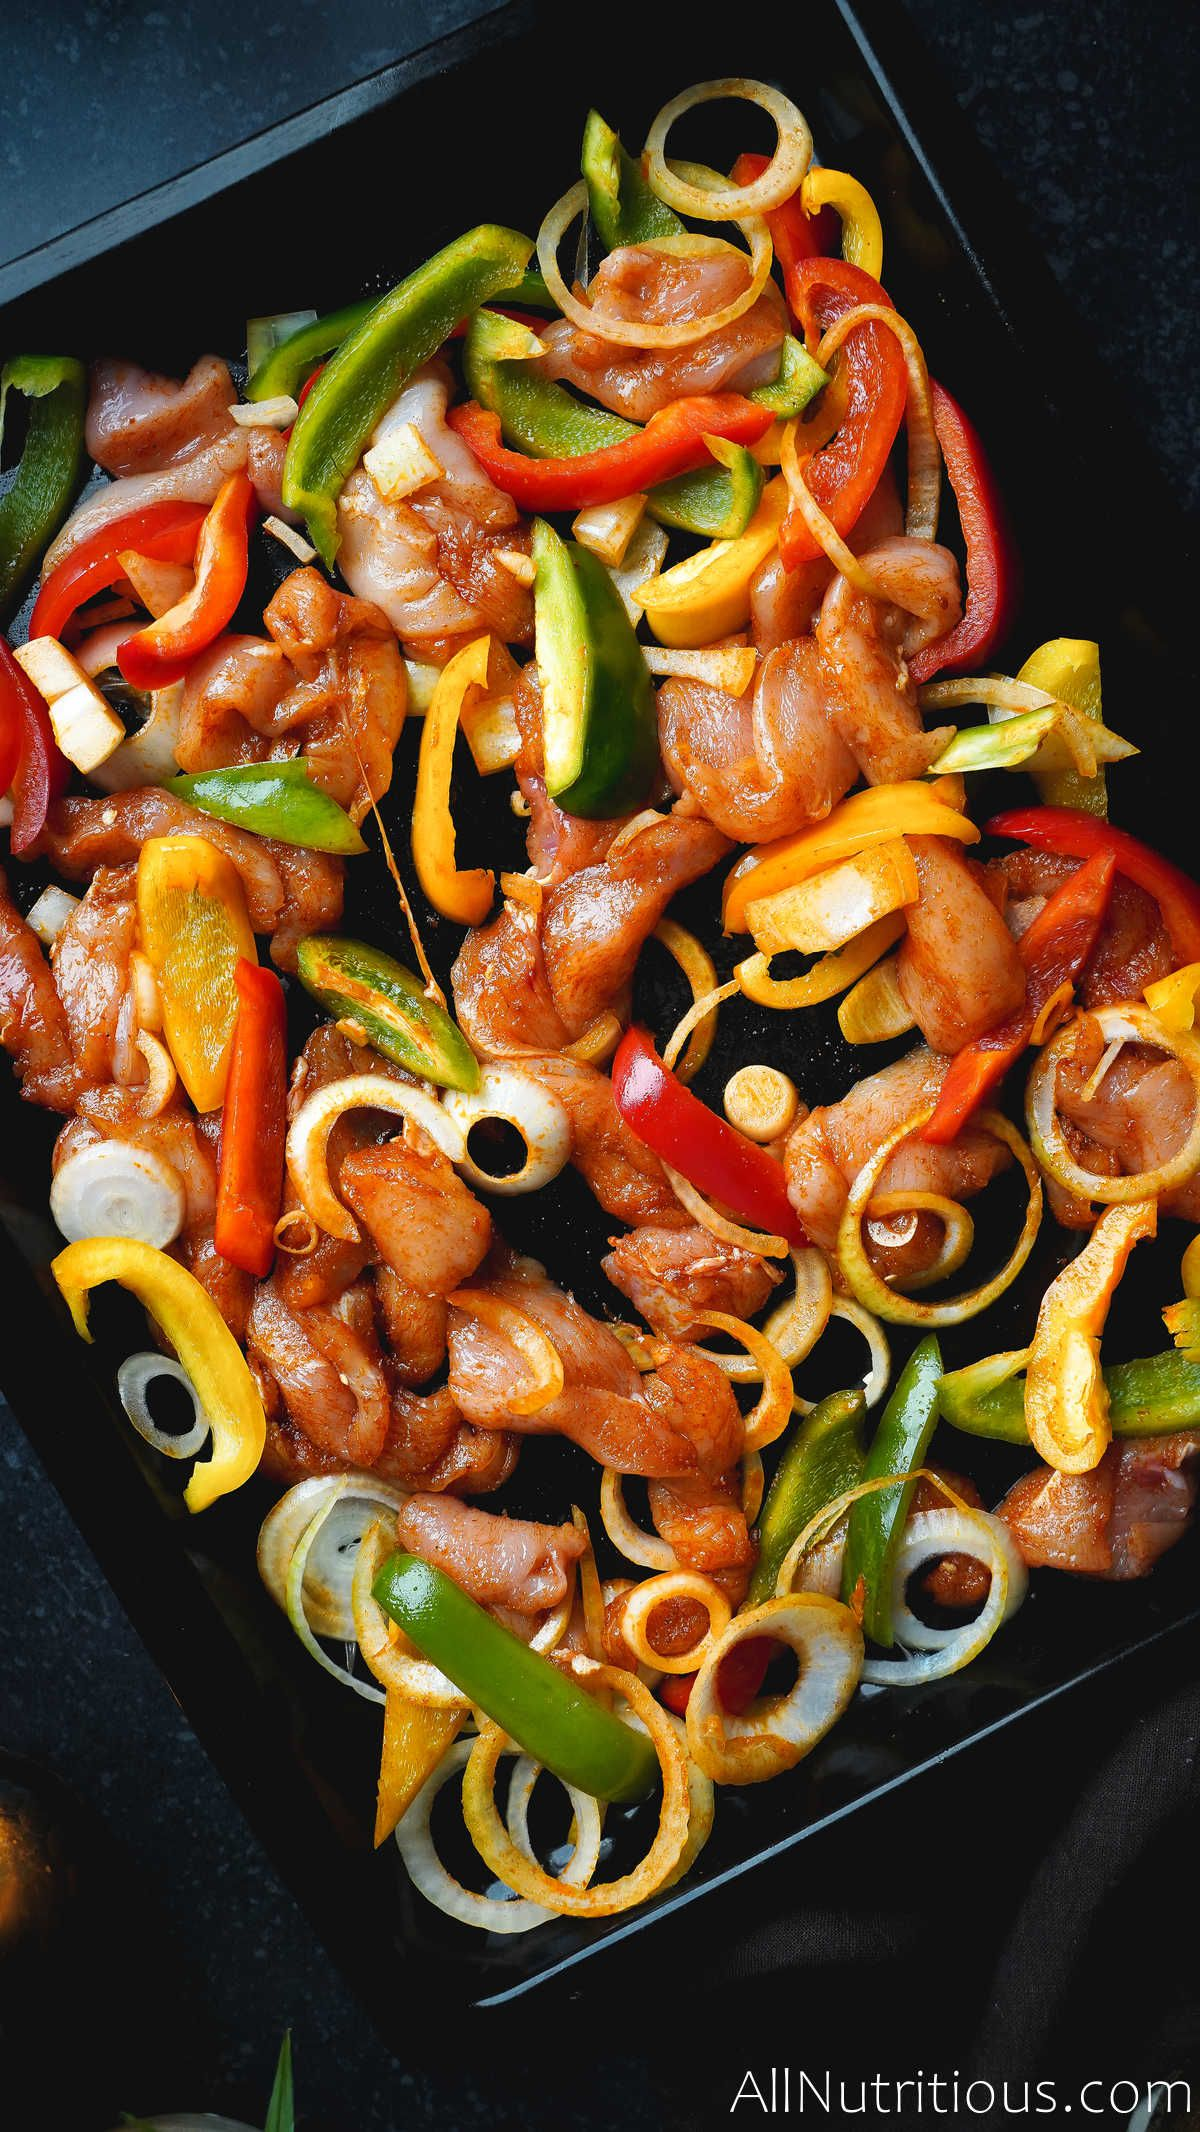 onions and peppers on sheet pan